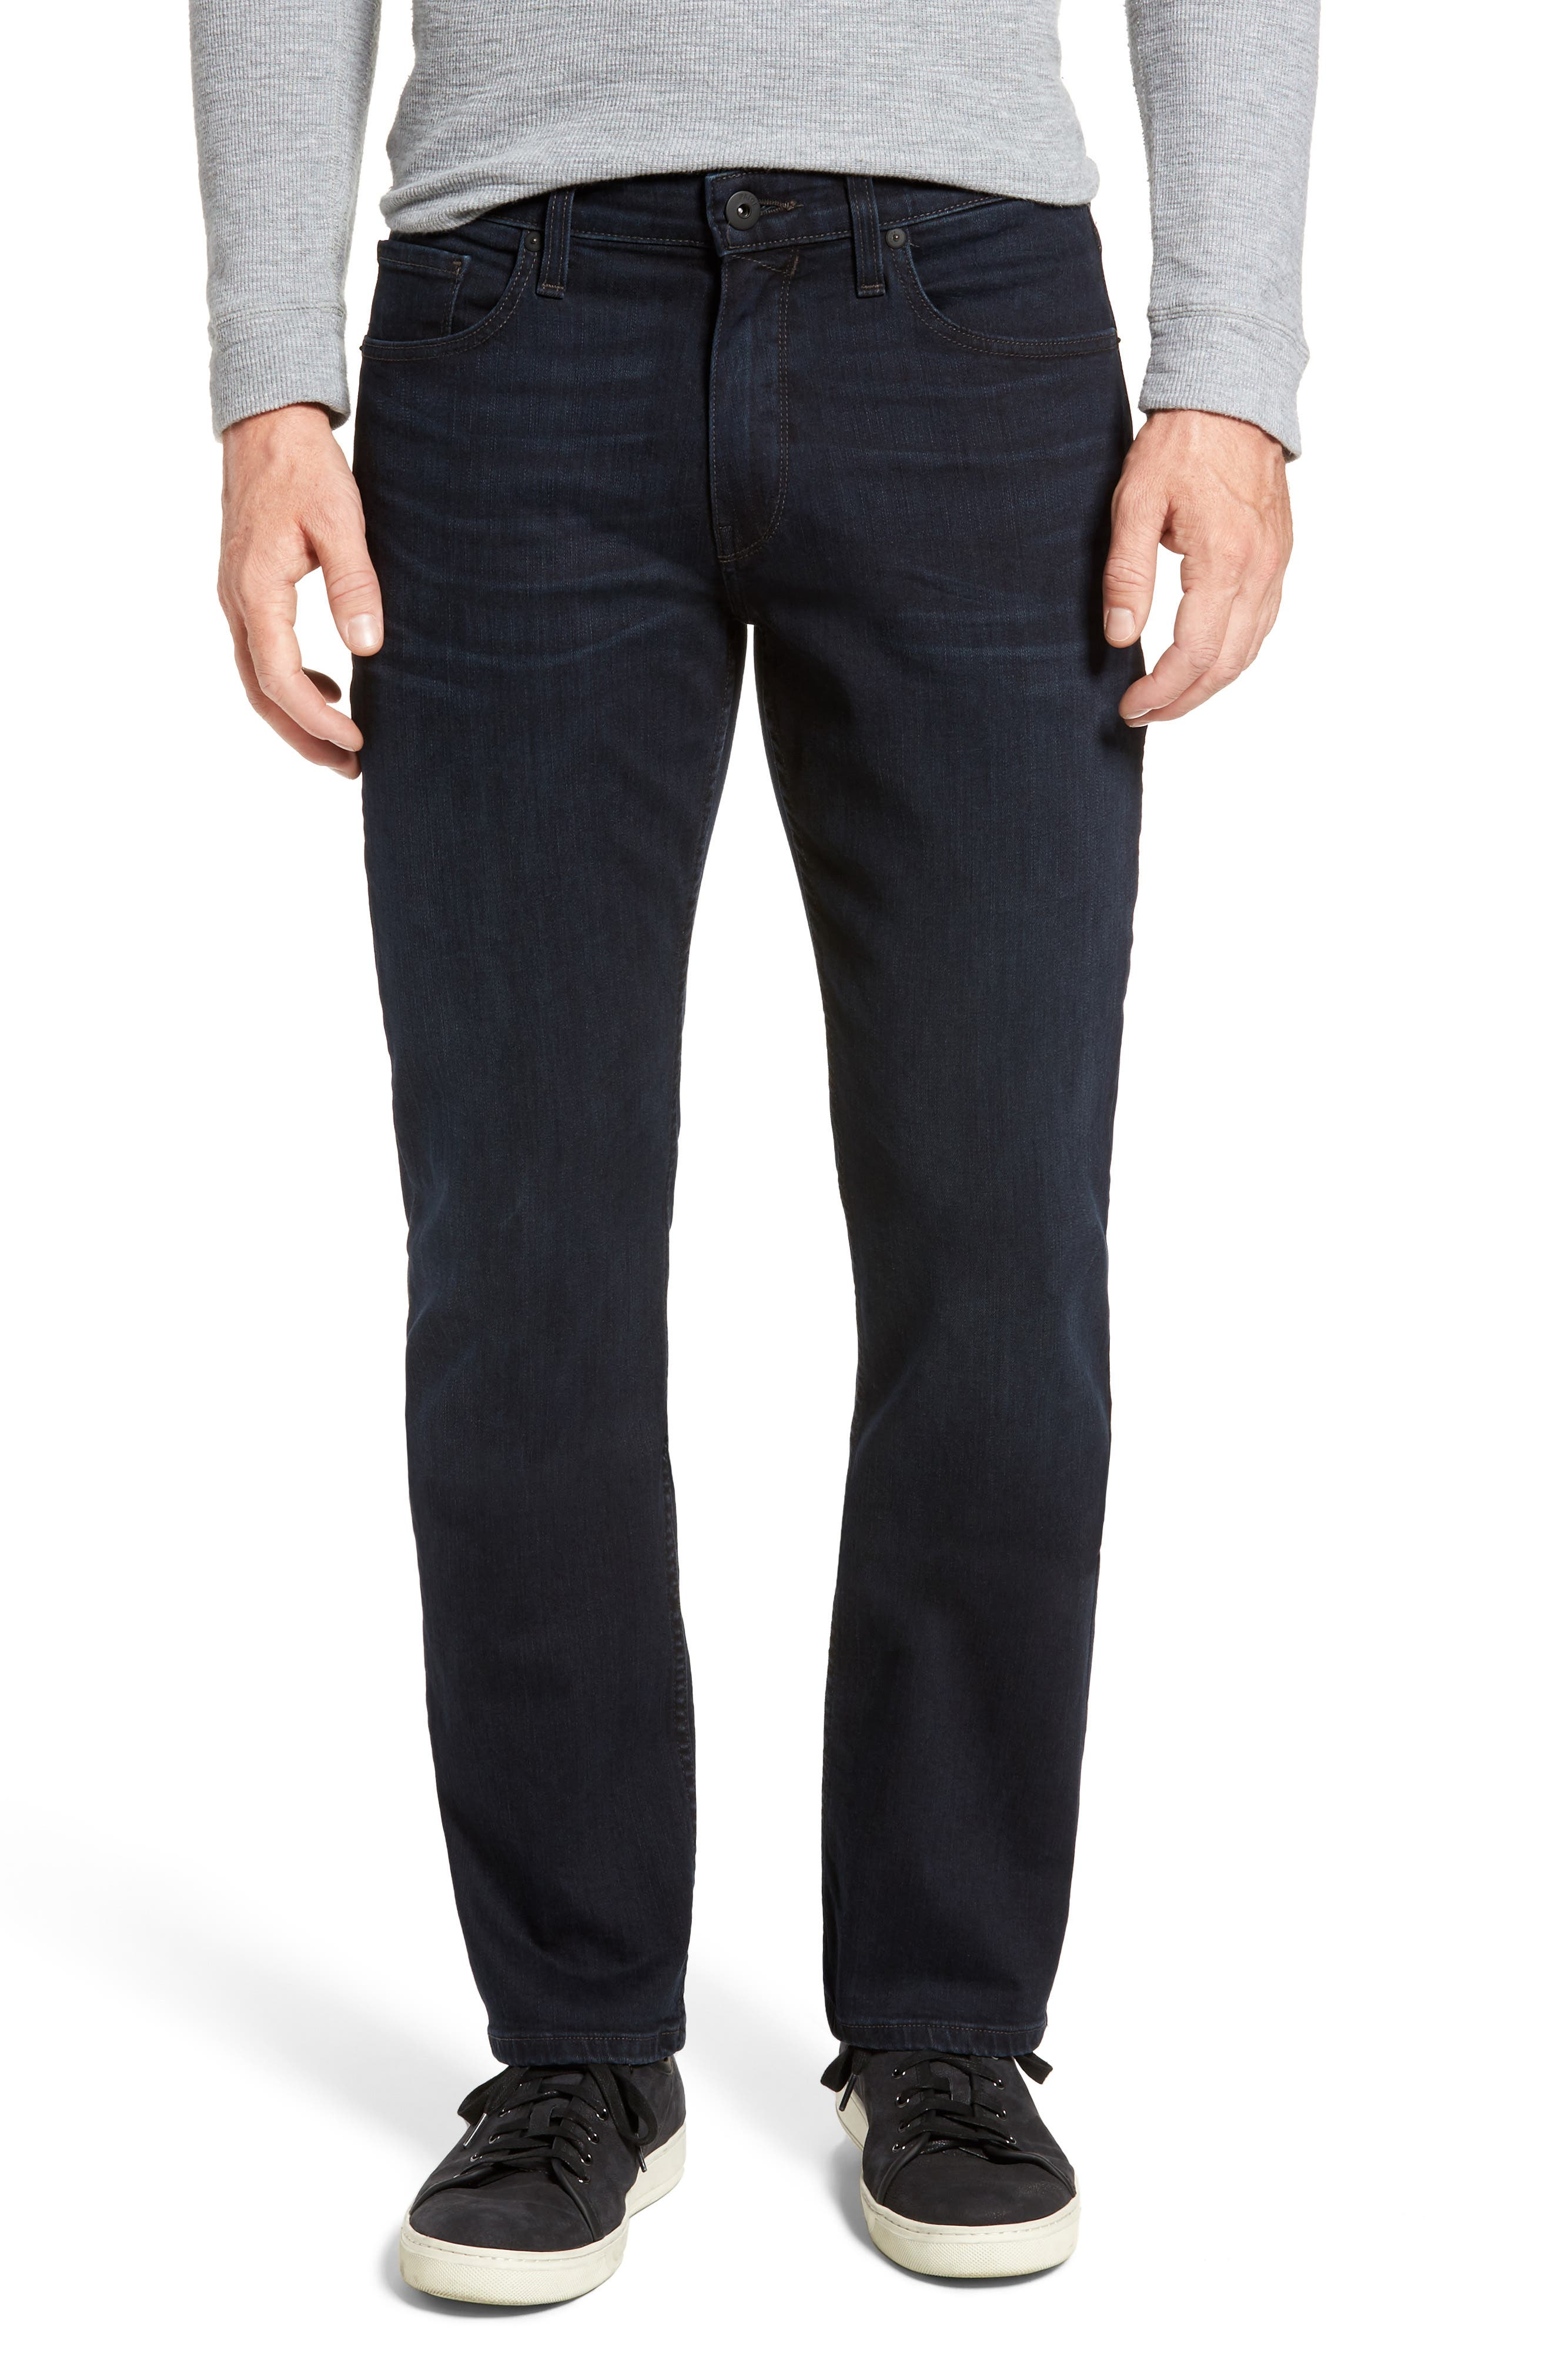 Doheny Relaxed Straight Leg Jeans,                         Main,                         color, Murray